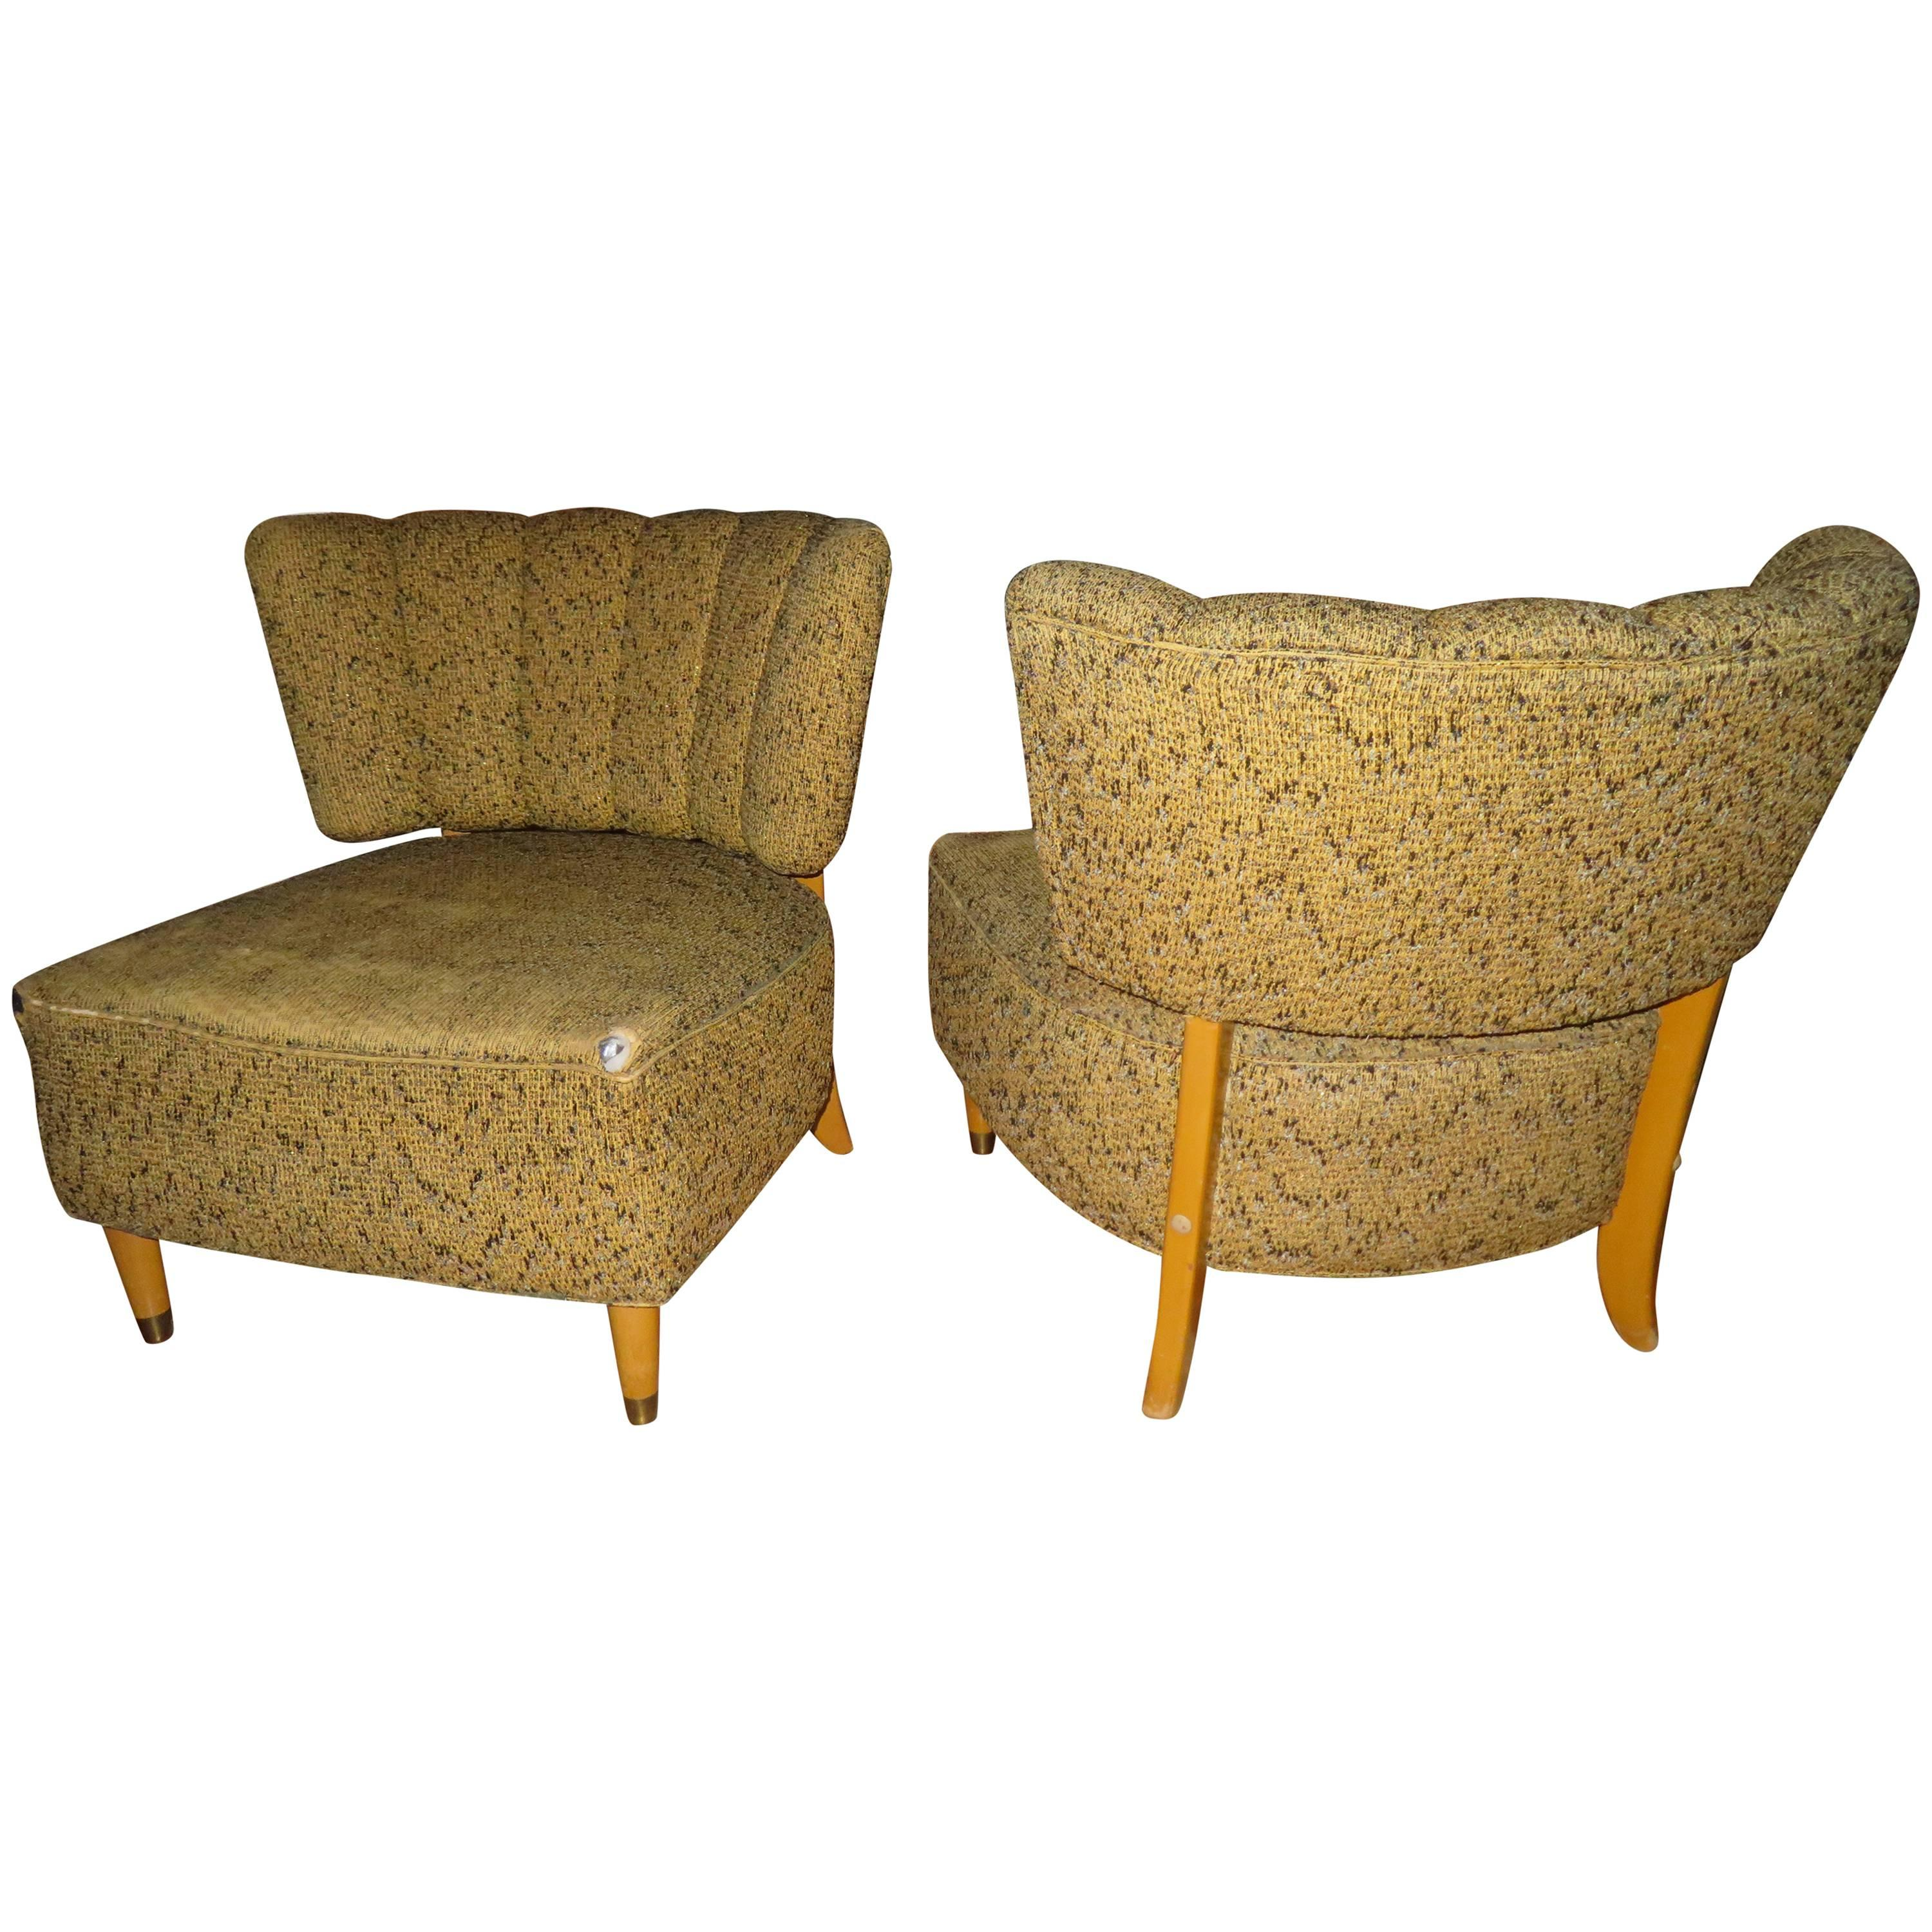 Lovely Pair of Gilbert Rohde Style Slipper Chairs, Mid-Century Modern